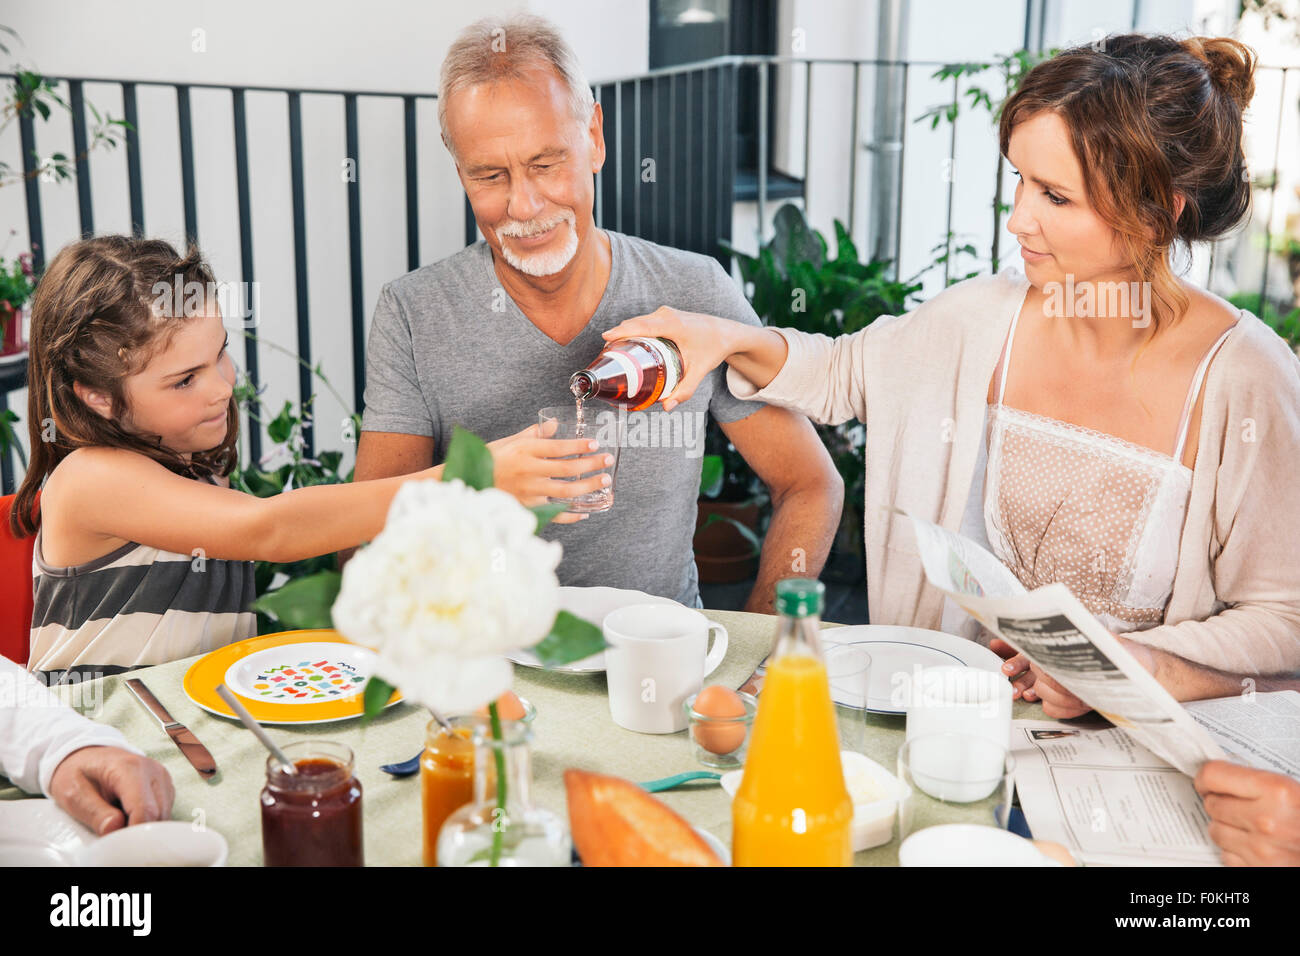 Three generations of family sitting at a large breakfast table on balcony - Stock Image